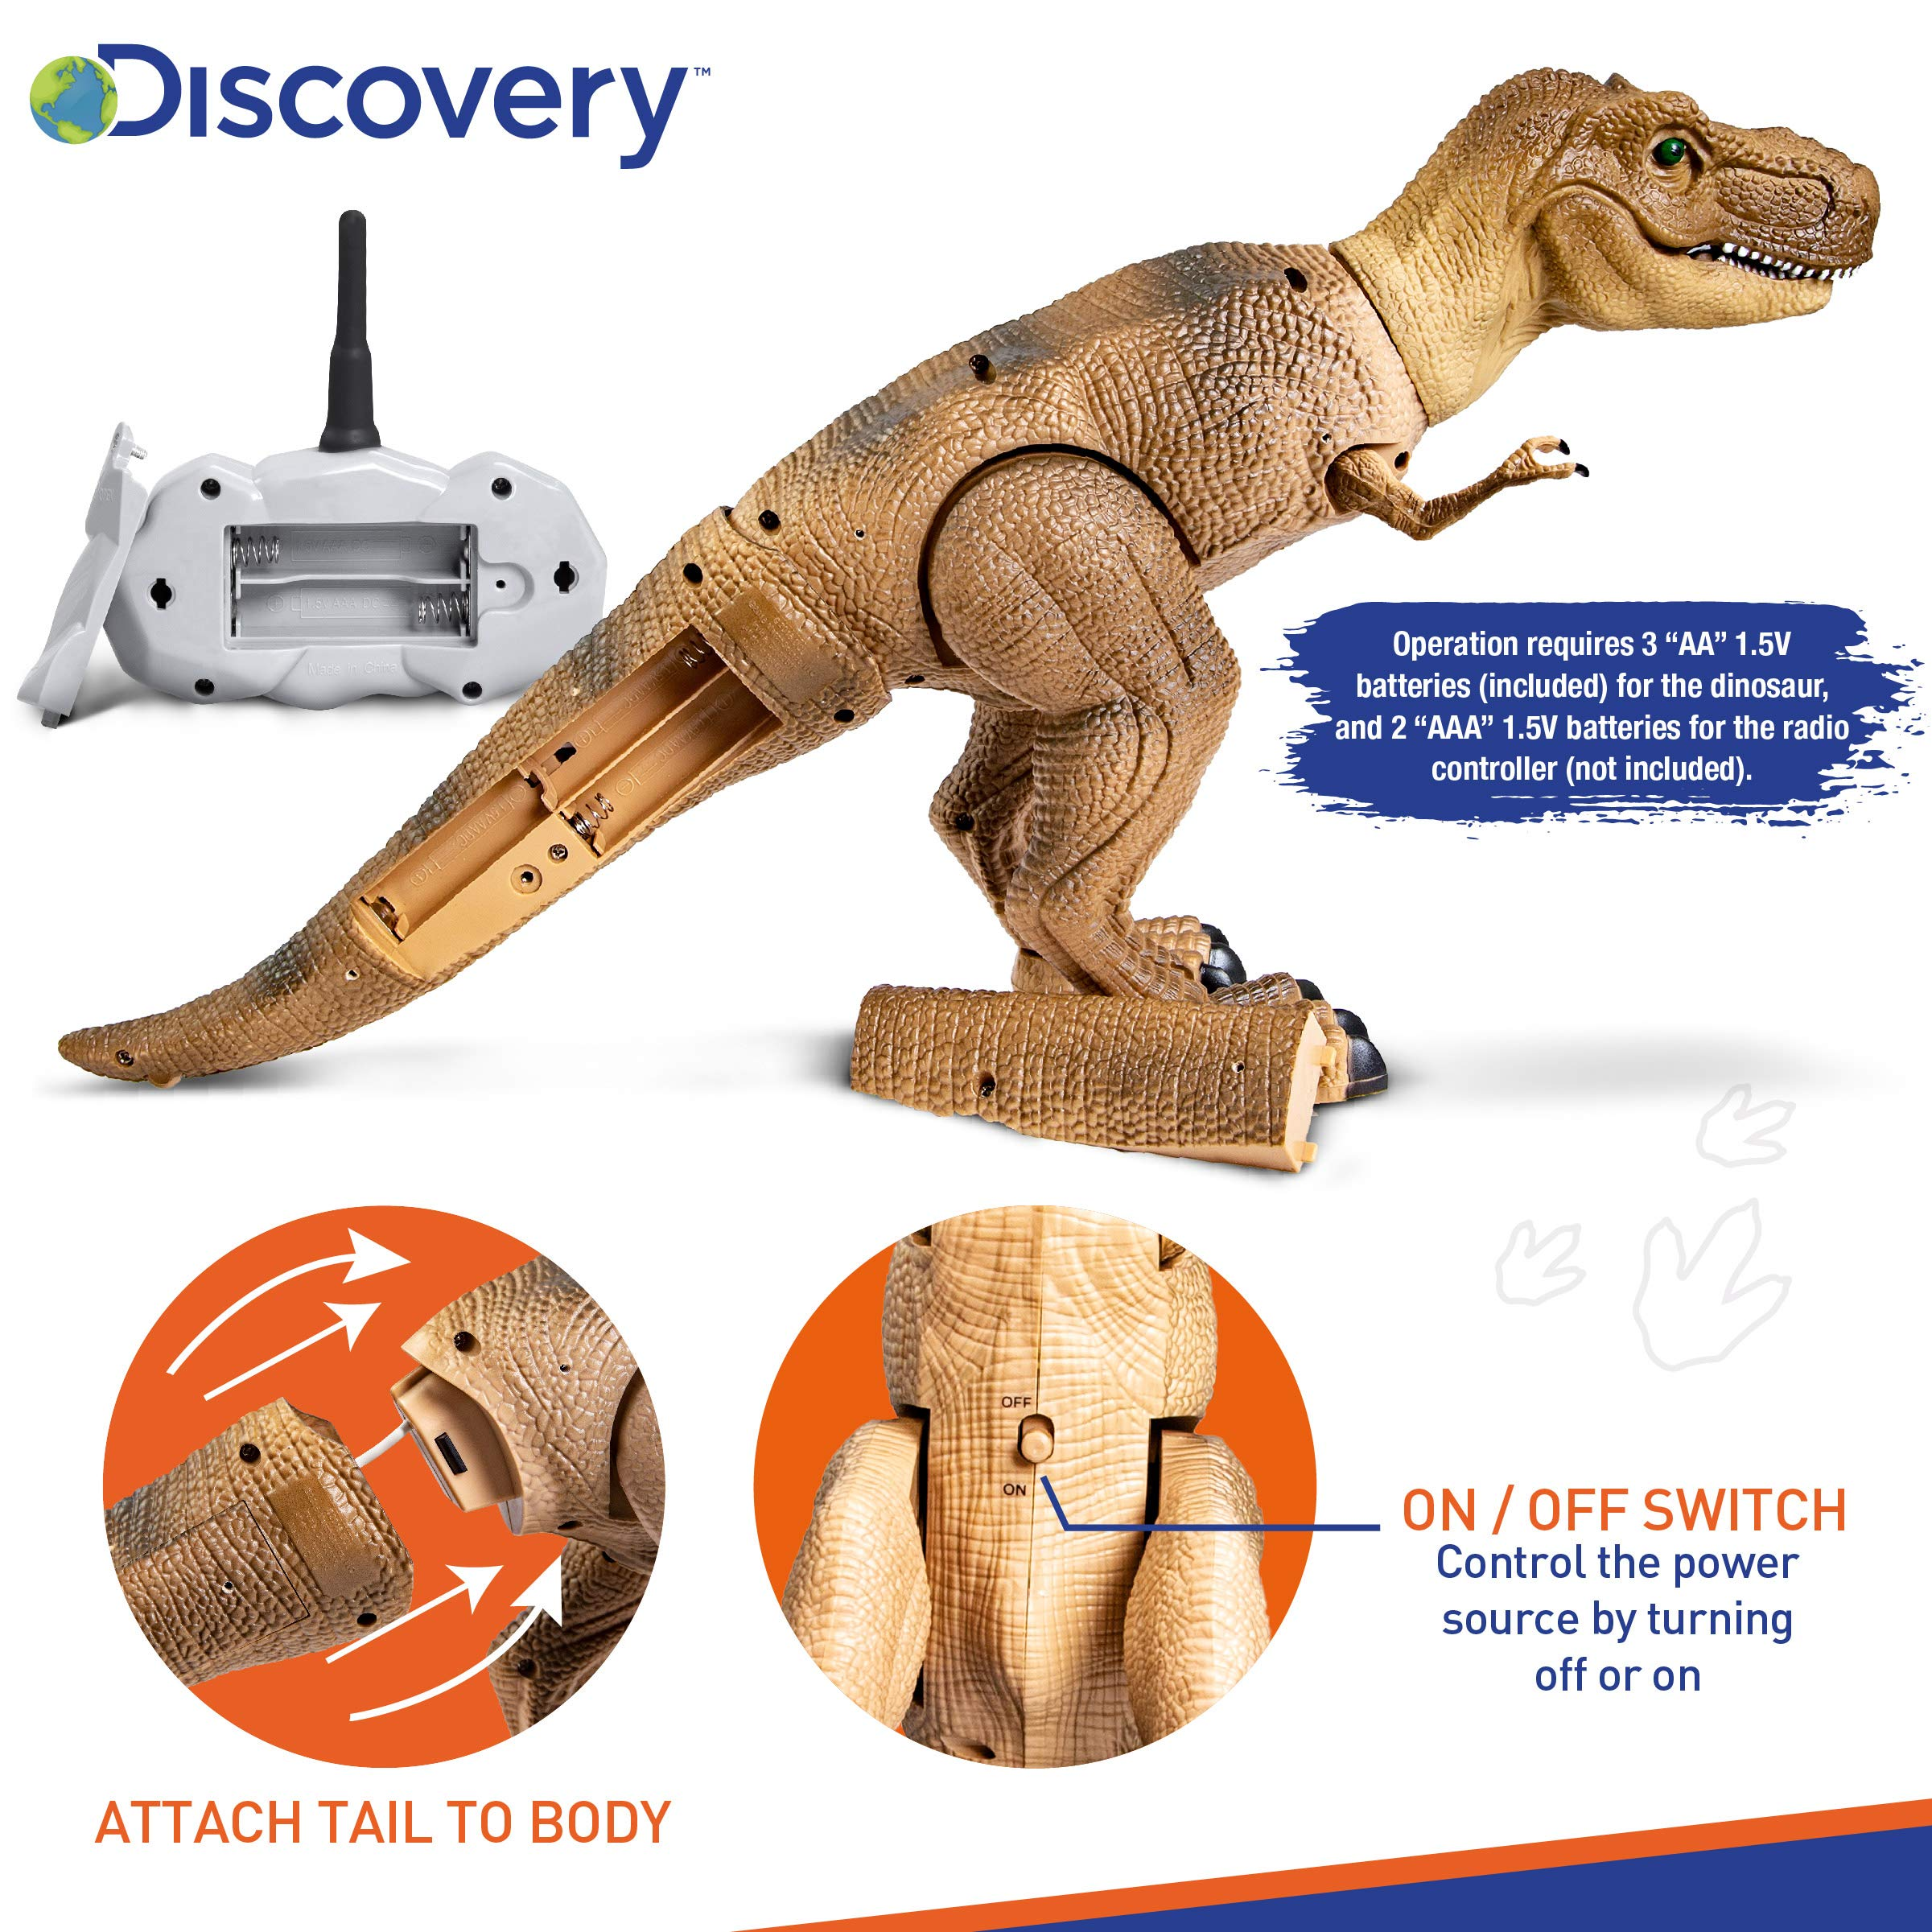 Discovery Kids Remote Control RC T Rex Dinosaur Electronic Toy Action Figure Moving & Walking Robot w/Roaring Sounds & Chomping Mouth, Realistic Plastic Model, Boys & Girls 6 Years Old+ by Discovery Kids (Image #6)